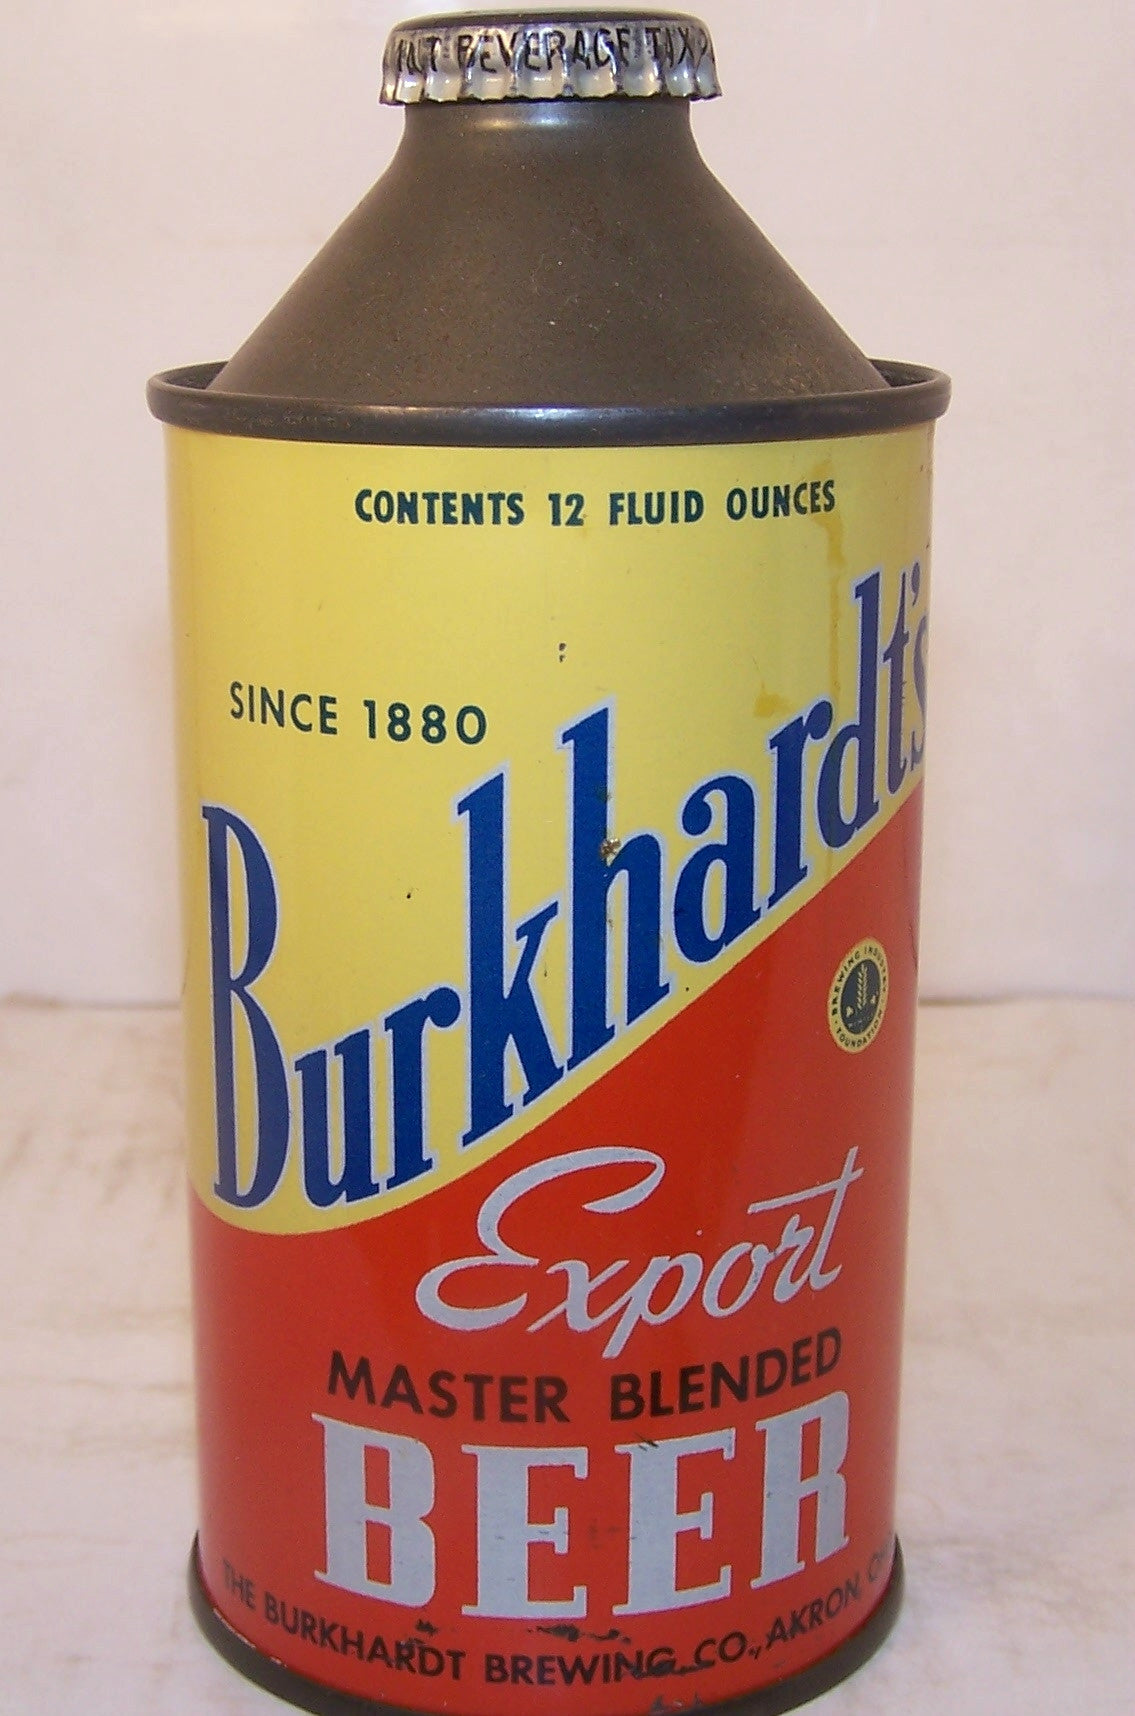 Burkhardt's Export Beer, USBC 156-4, Grade 1 Traded